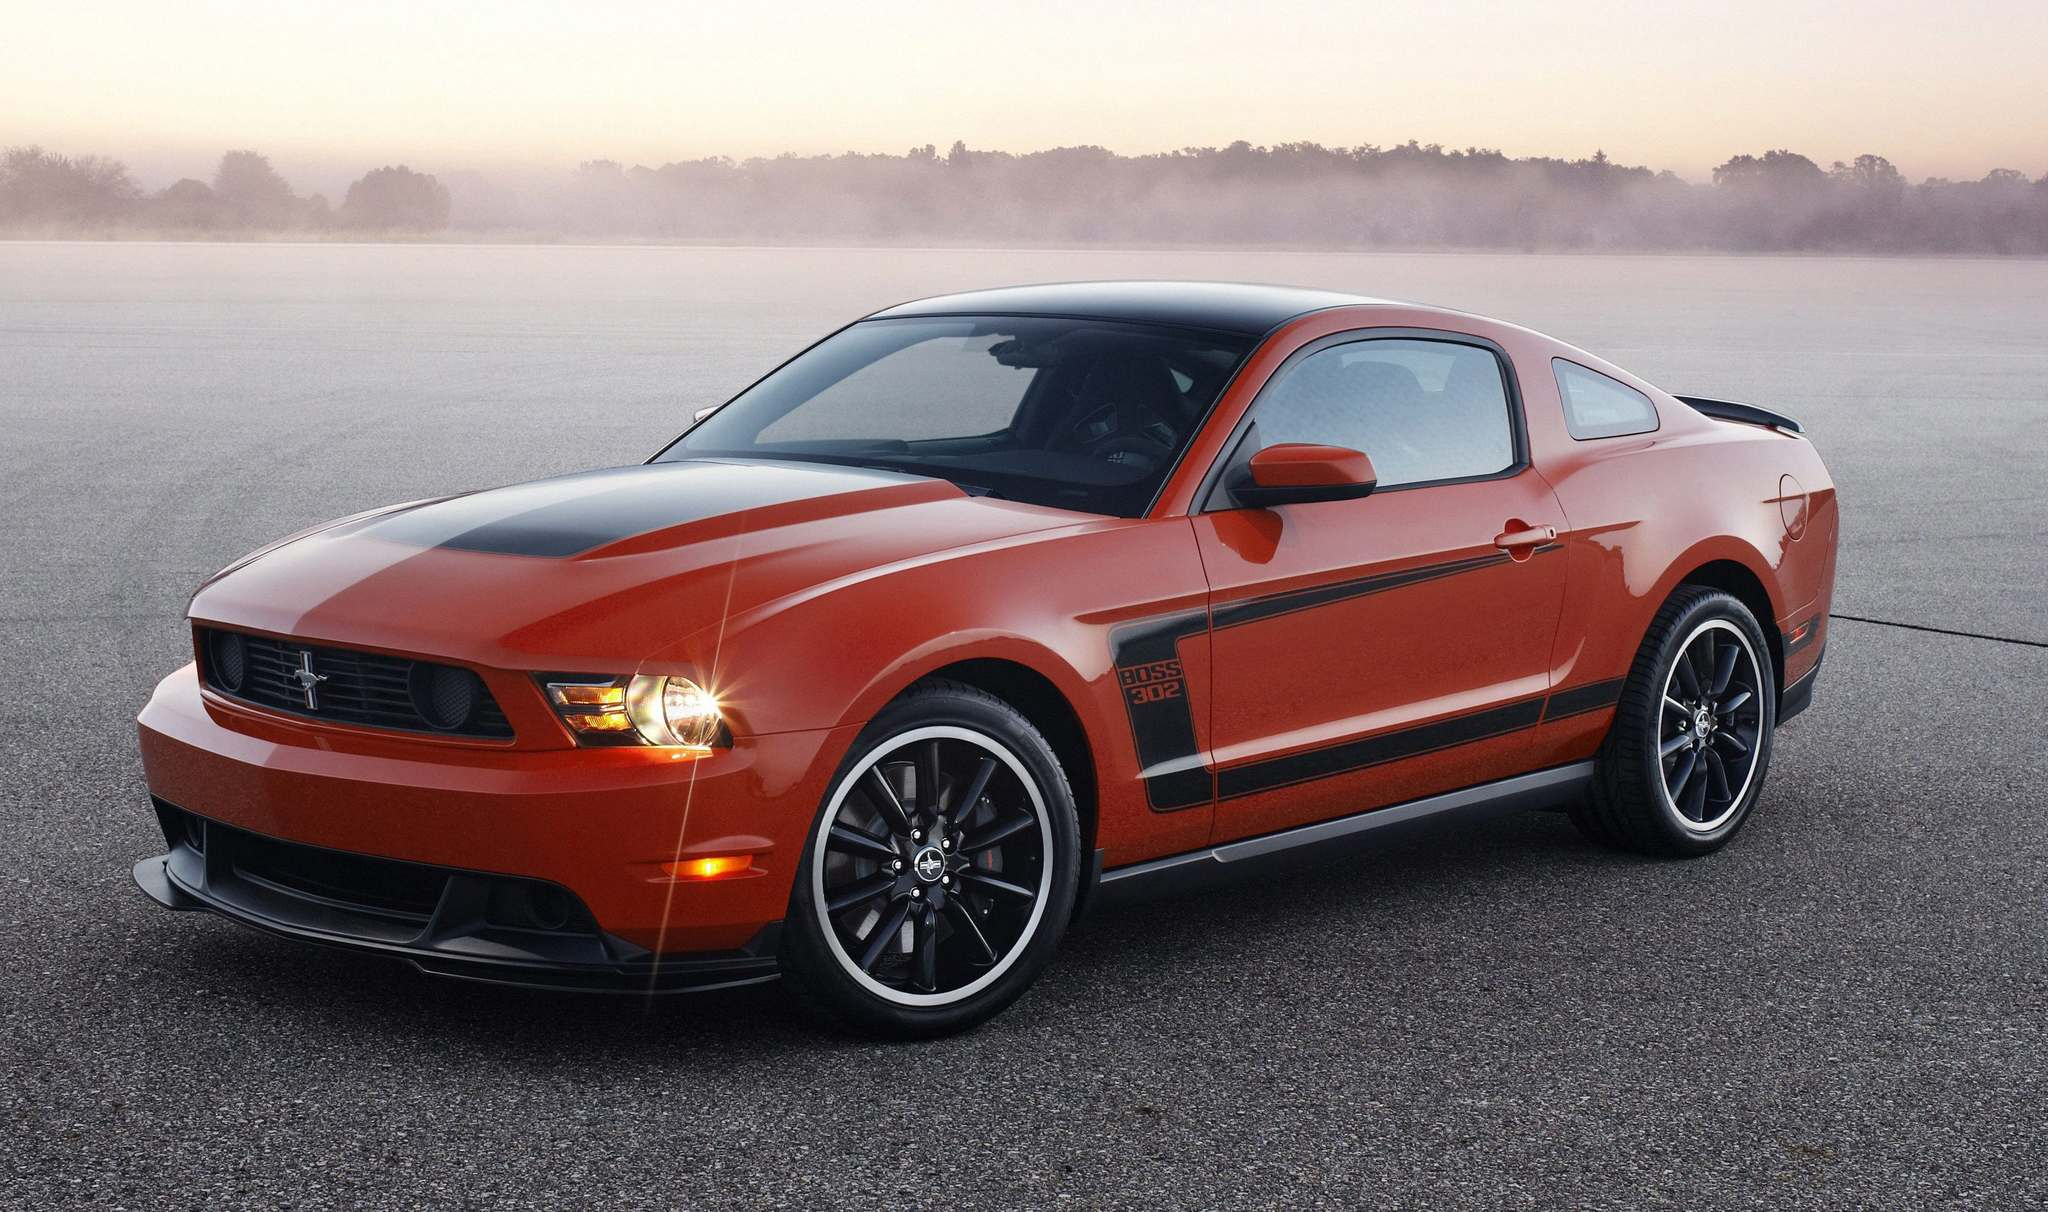 2012 Ford Mustang Boss 302. (Supplied)